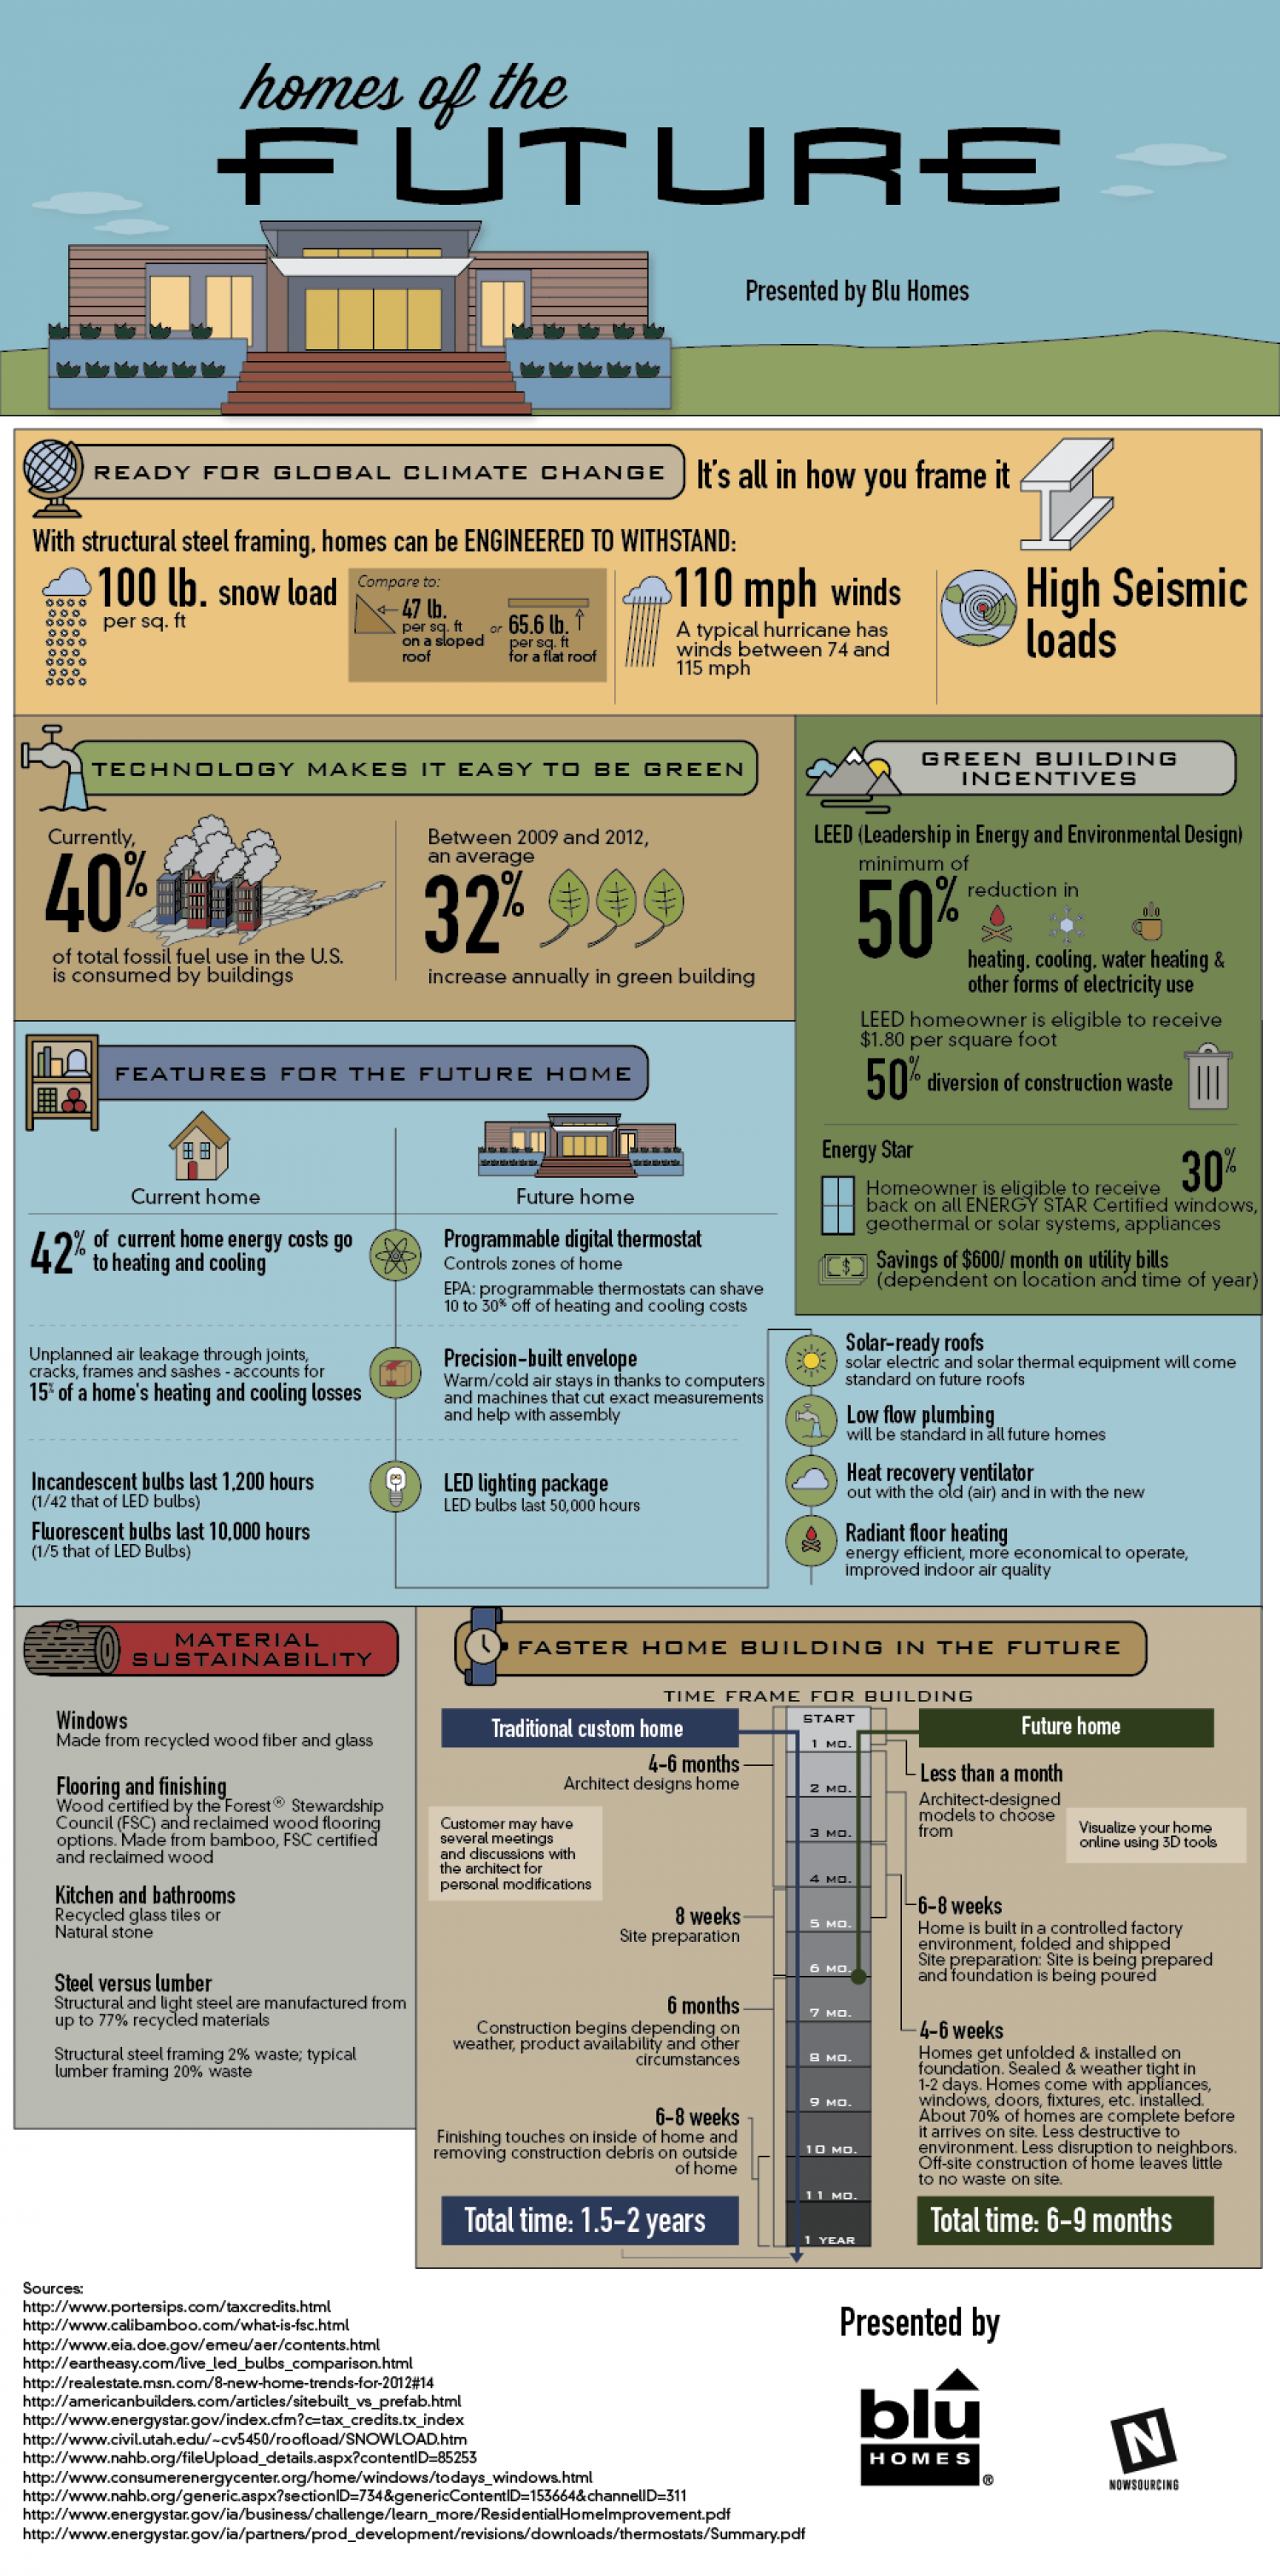 Homes of the Future Infographic